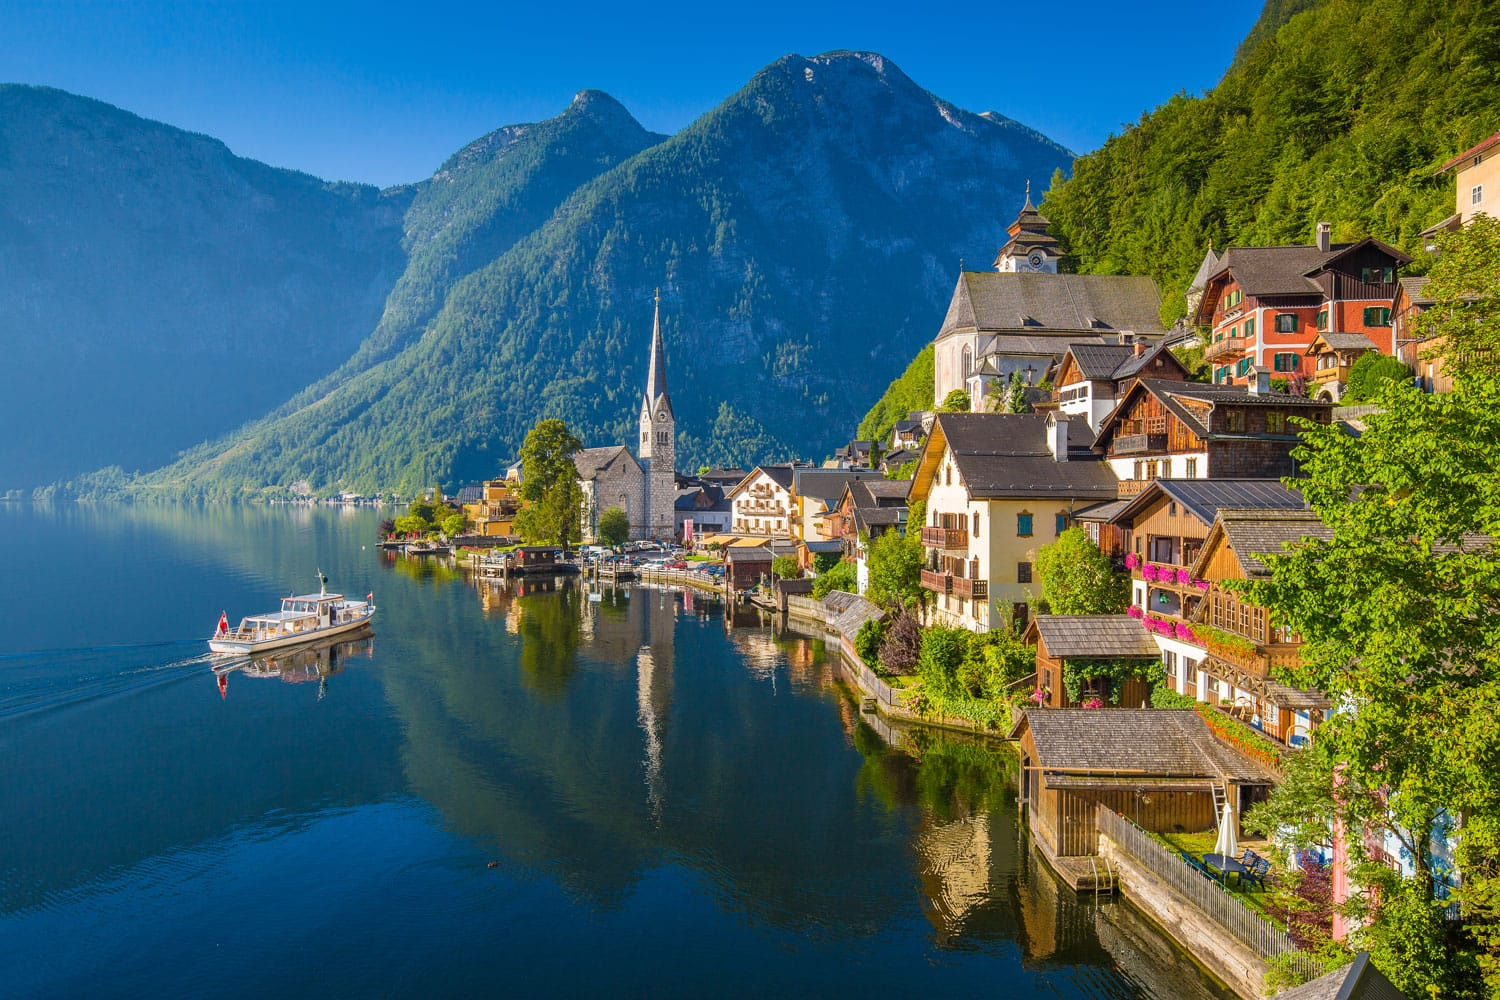 Scenic picture-postcard view of famous Hallstatt lakeside town in the Austrian Alps with passenger ship in beautiful morning light at sunrise on a sunny day in summer, Salzkammergut region, Austria